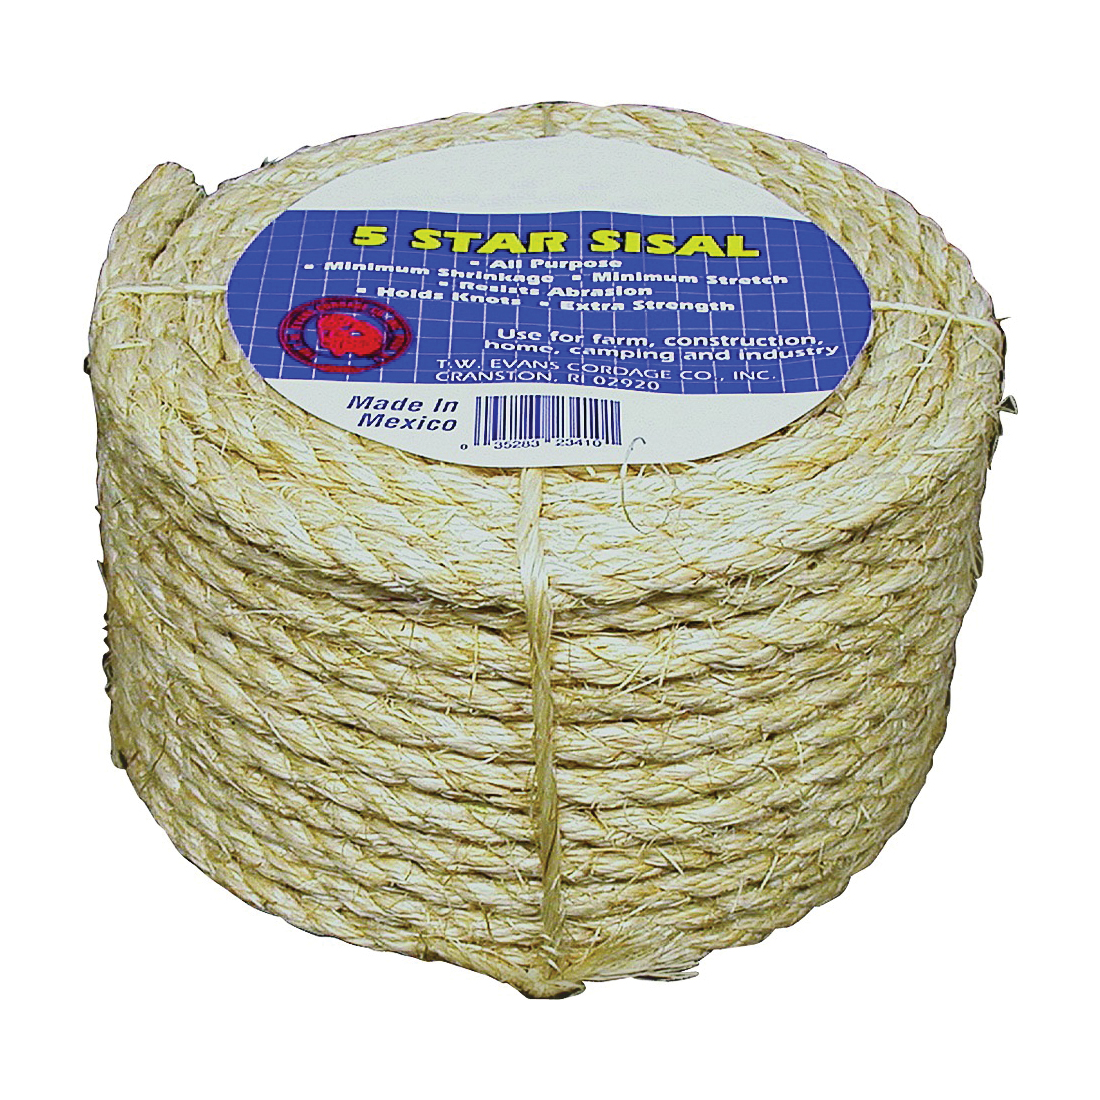 Picture of T.W. Evans Cordage 23-205 Rope, 1/4 in Dia, 50 ft L, 900 lb Working Load, Sisal, Cello Wrapped